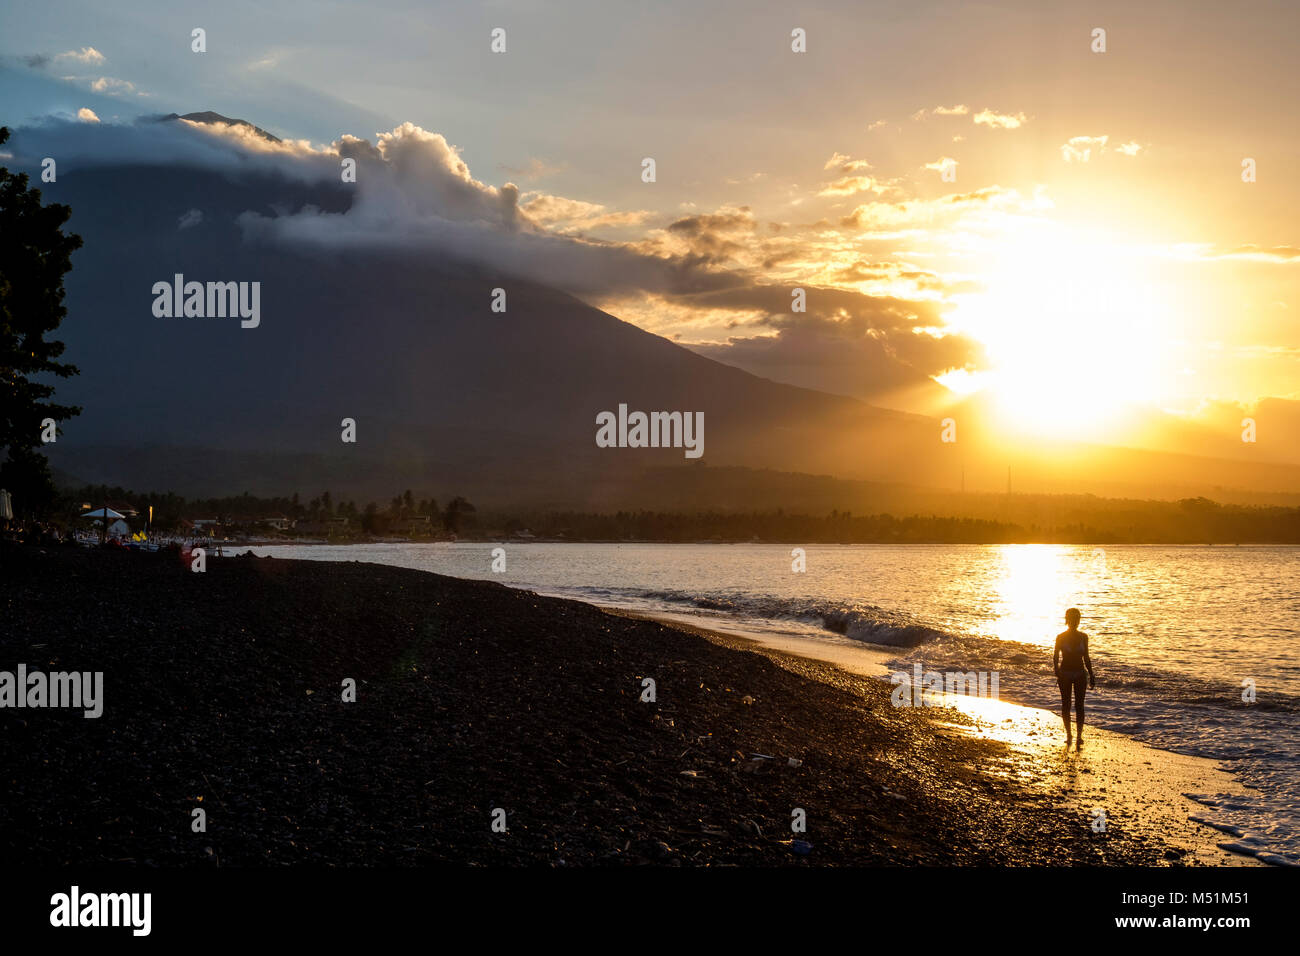 A woman walks on Amed beach with Gunung Agung volcano in the distance at sunset, Bali, Indonesia. - Stock Image